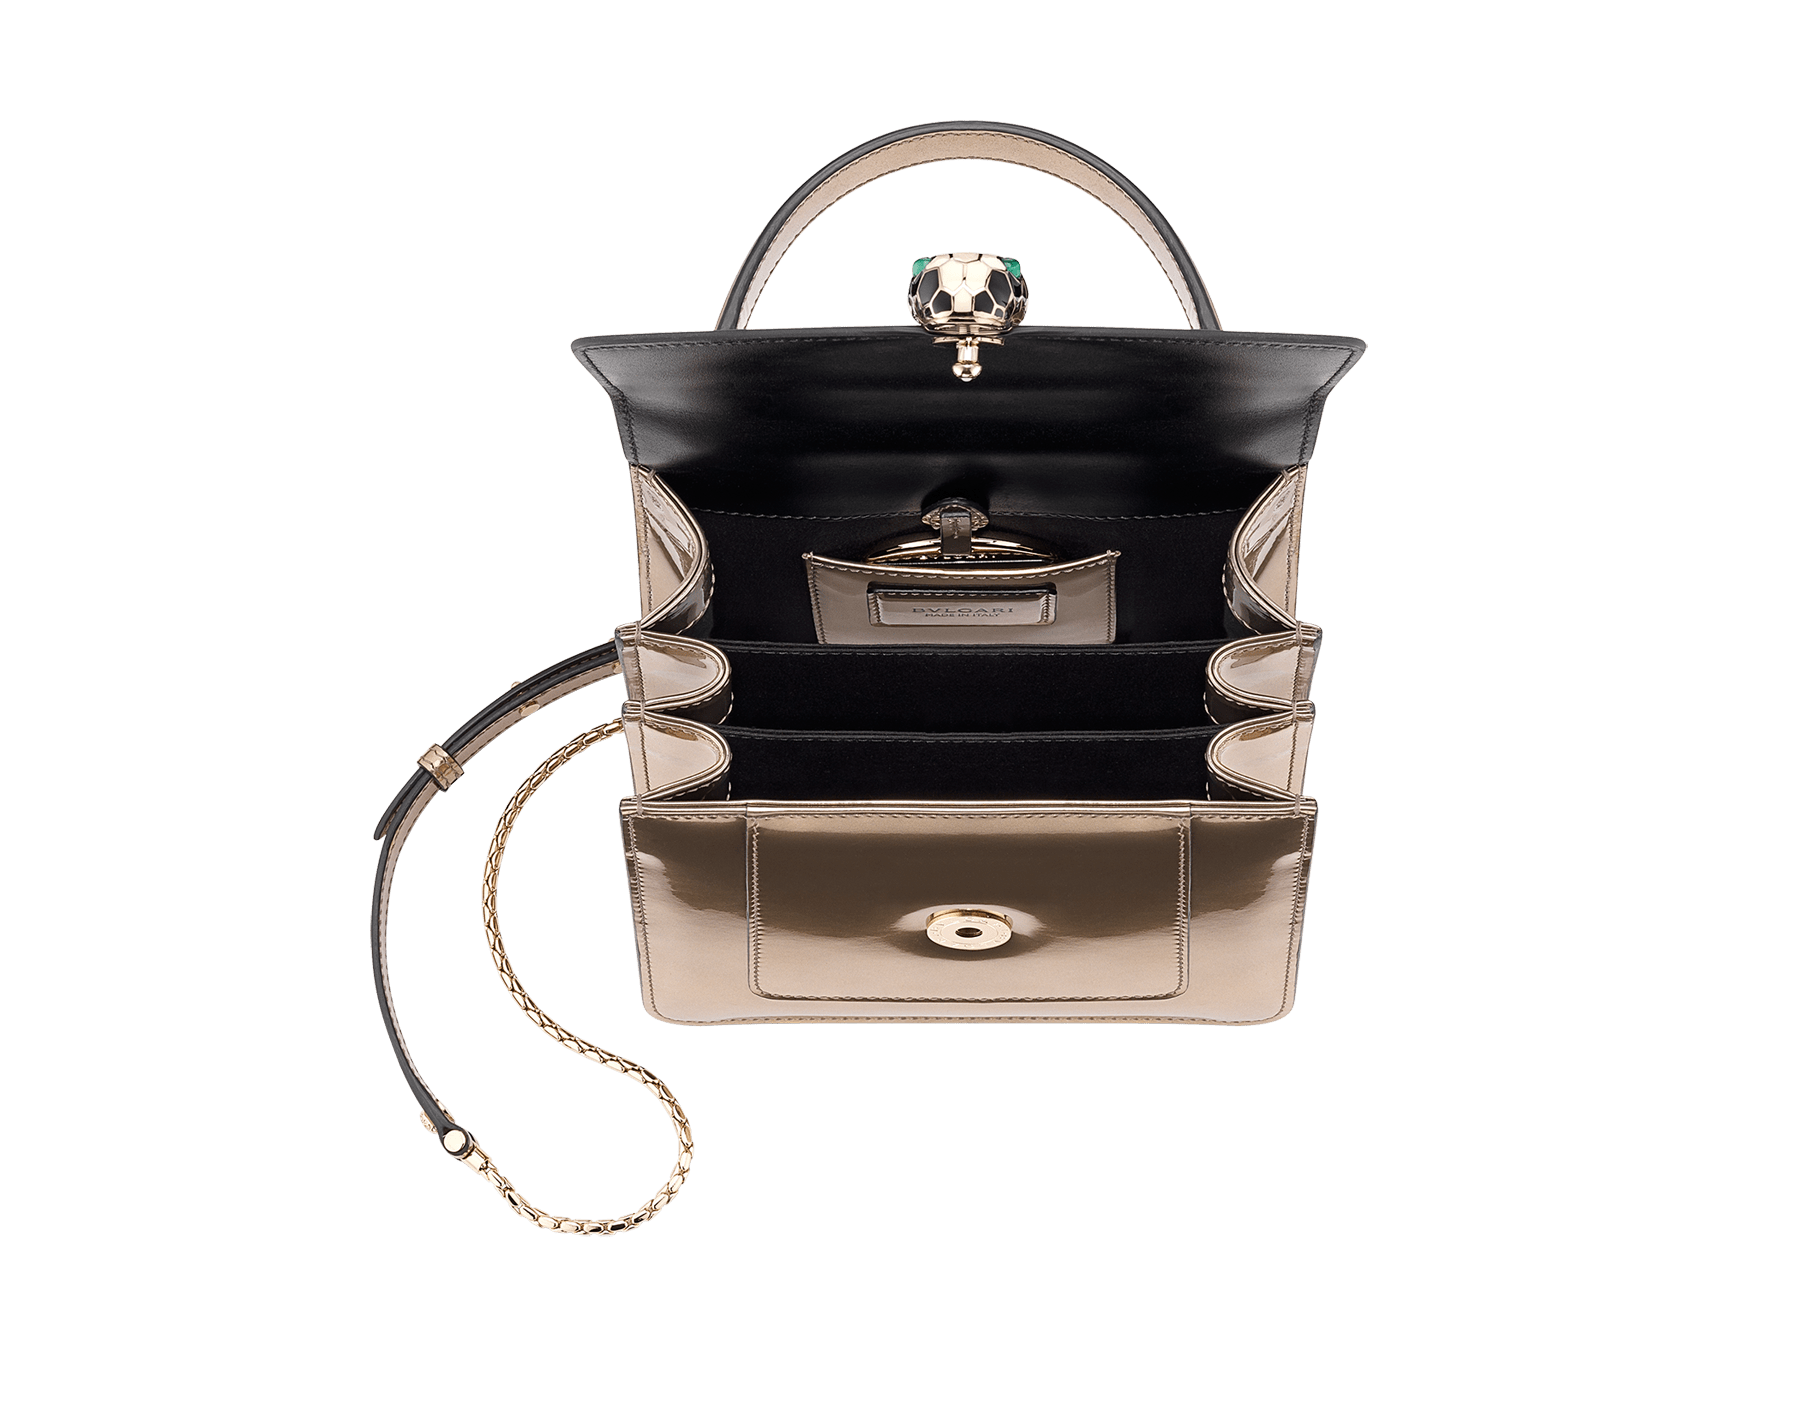 Flap cover bag Serpenti Forever in antique bronze brushed metallic calf leather. Brass light gold plated hardware and snake head closure in black and white enamel with eyes in green malachite. Test-Borse-Colore image 4